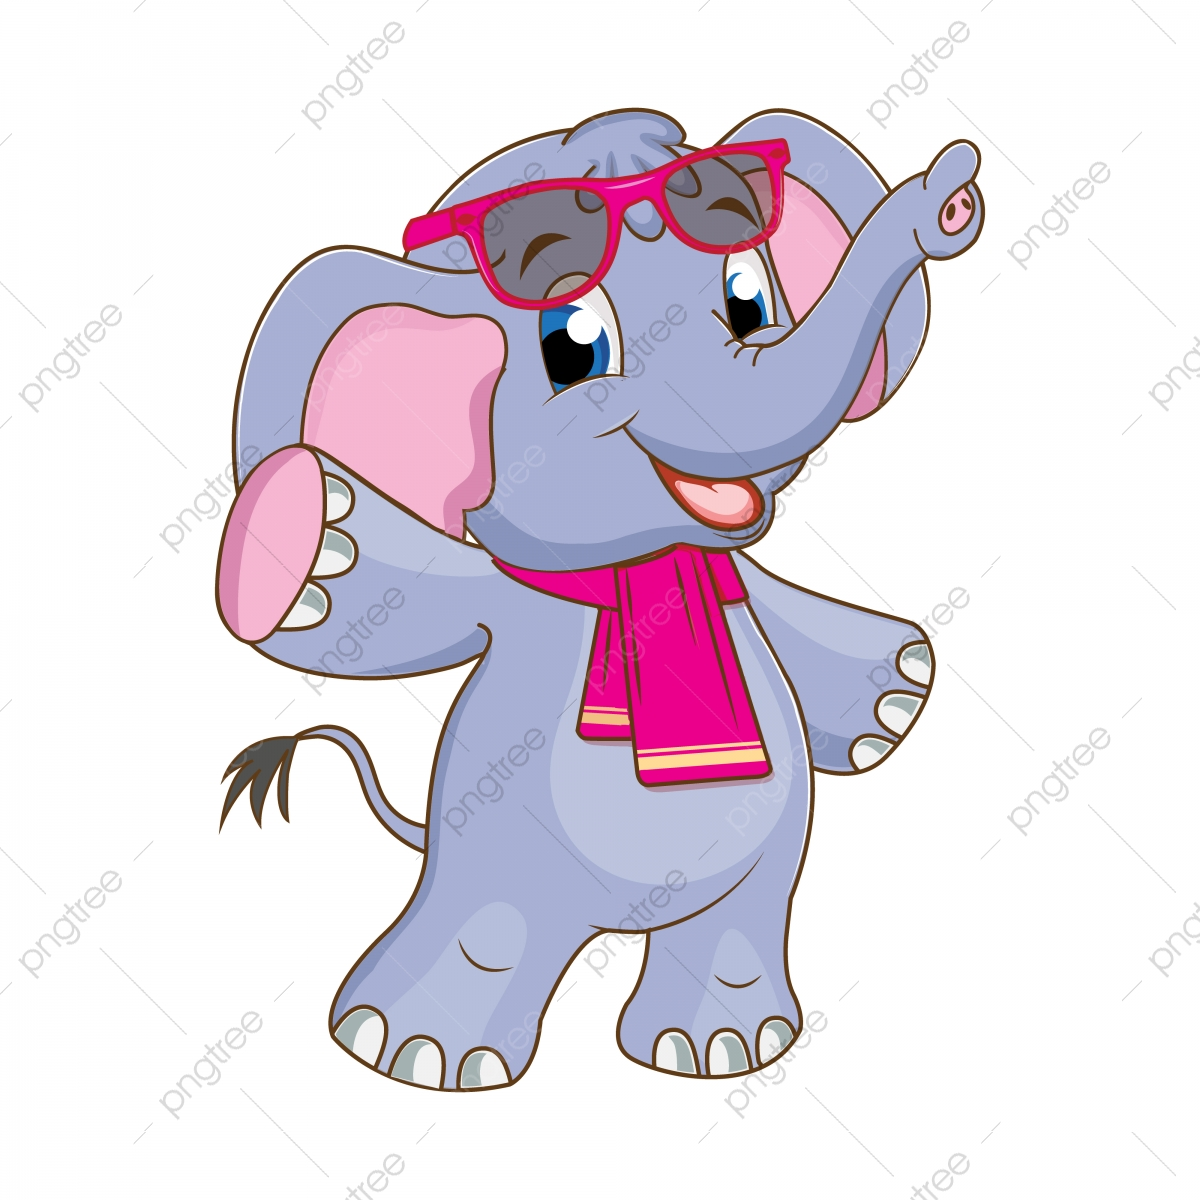 Cute Elephant Cartoon Animal Icon Cat Png And Vector With Transparent Background For Free Download Elephant png cliparts, all these png images has no background, free & unlimited downloads. https pngtree com freepng cute elephant cartoon 5225145 html